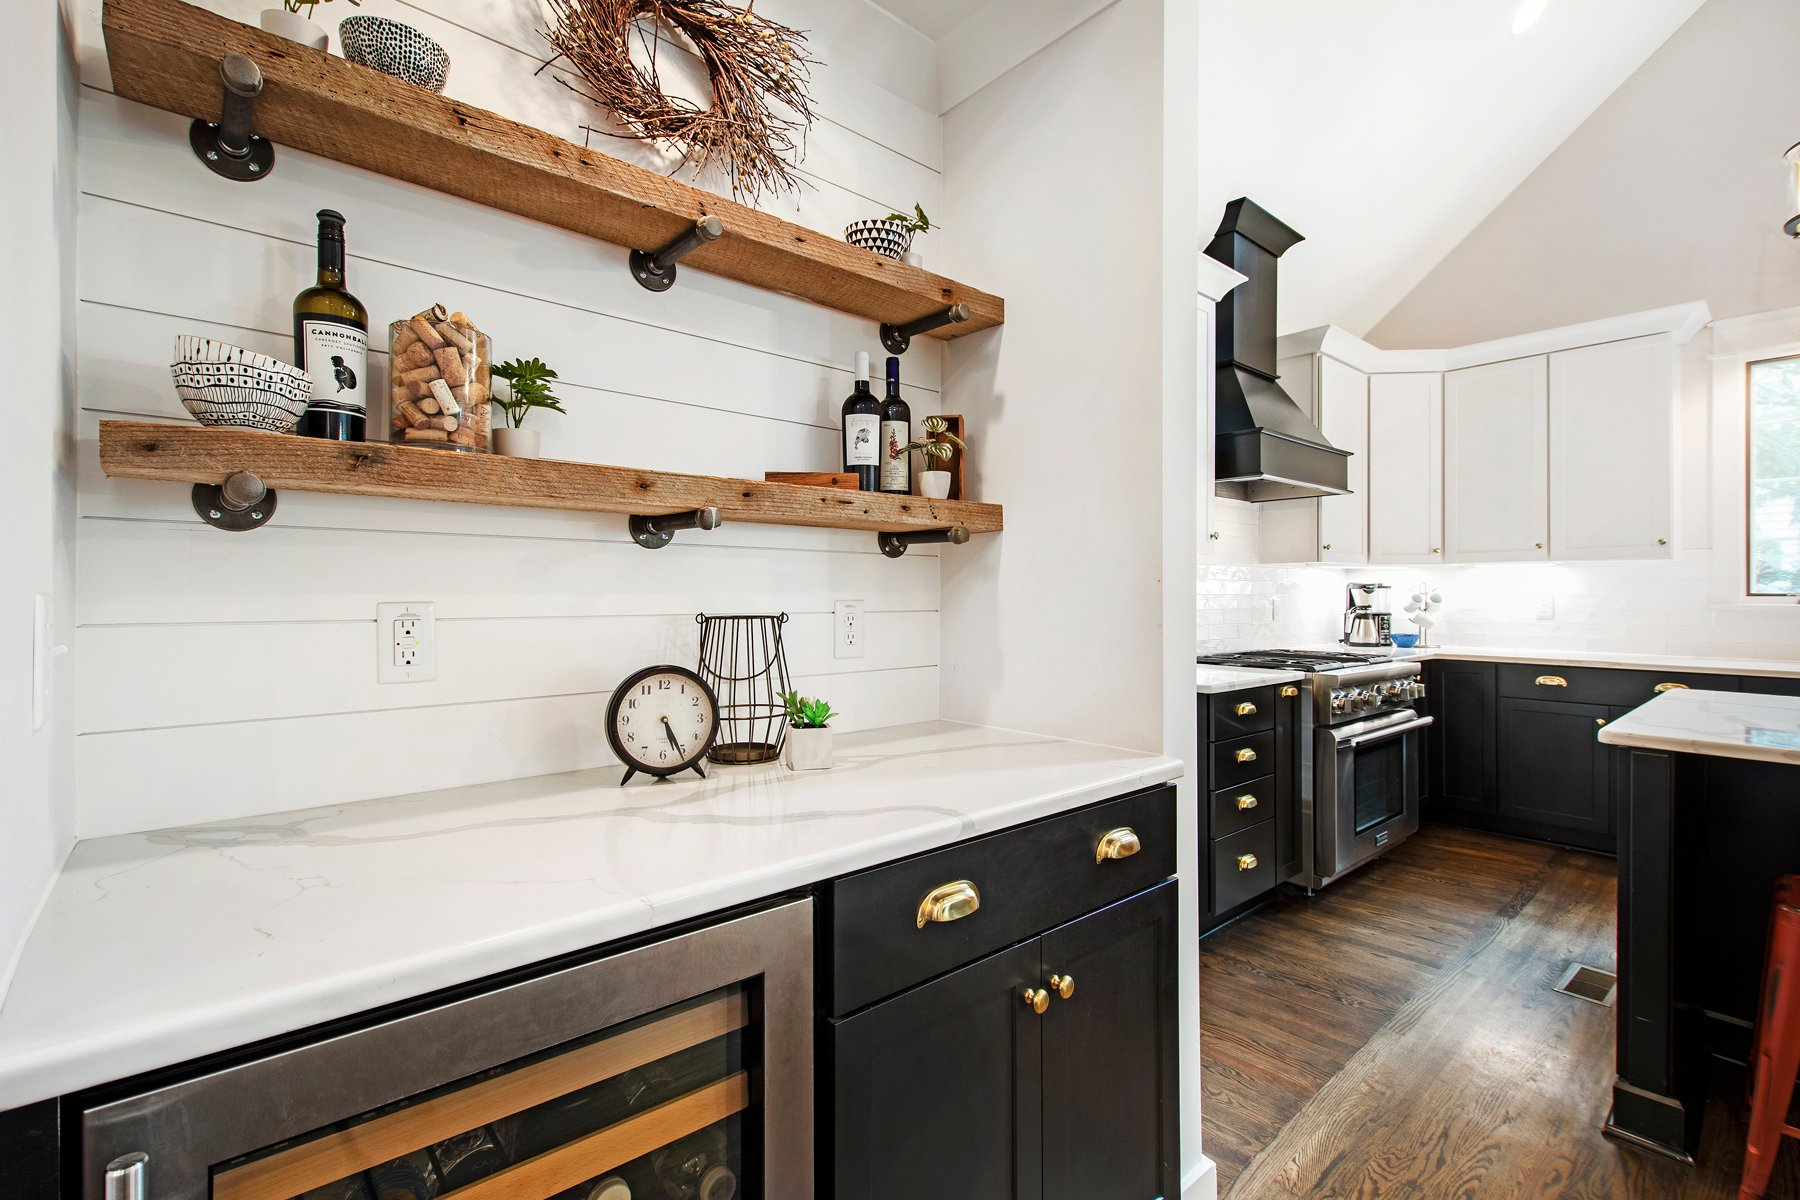 Rustic farmhouse style kitchen with black cabinets, gold hardware and white shiplap.